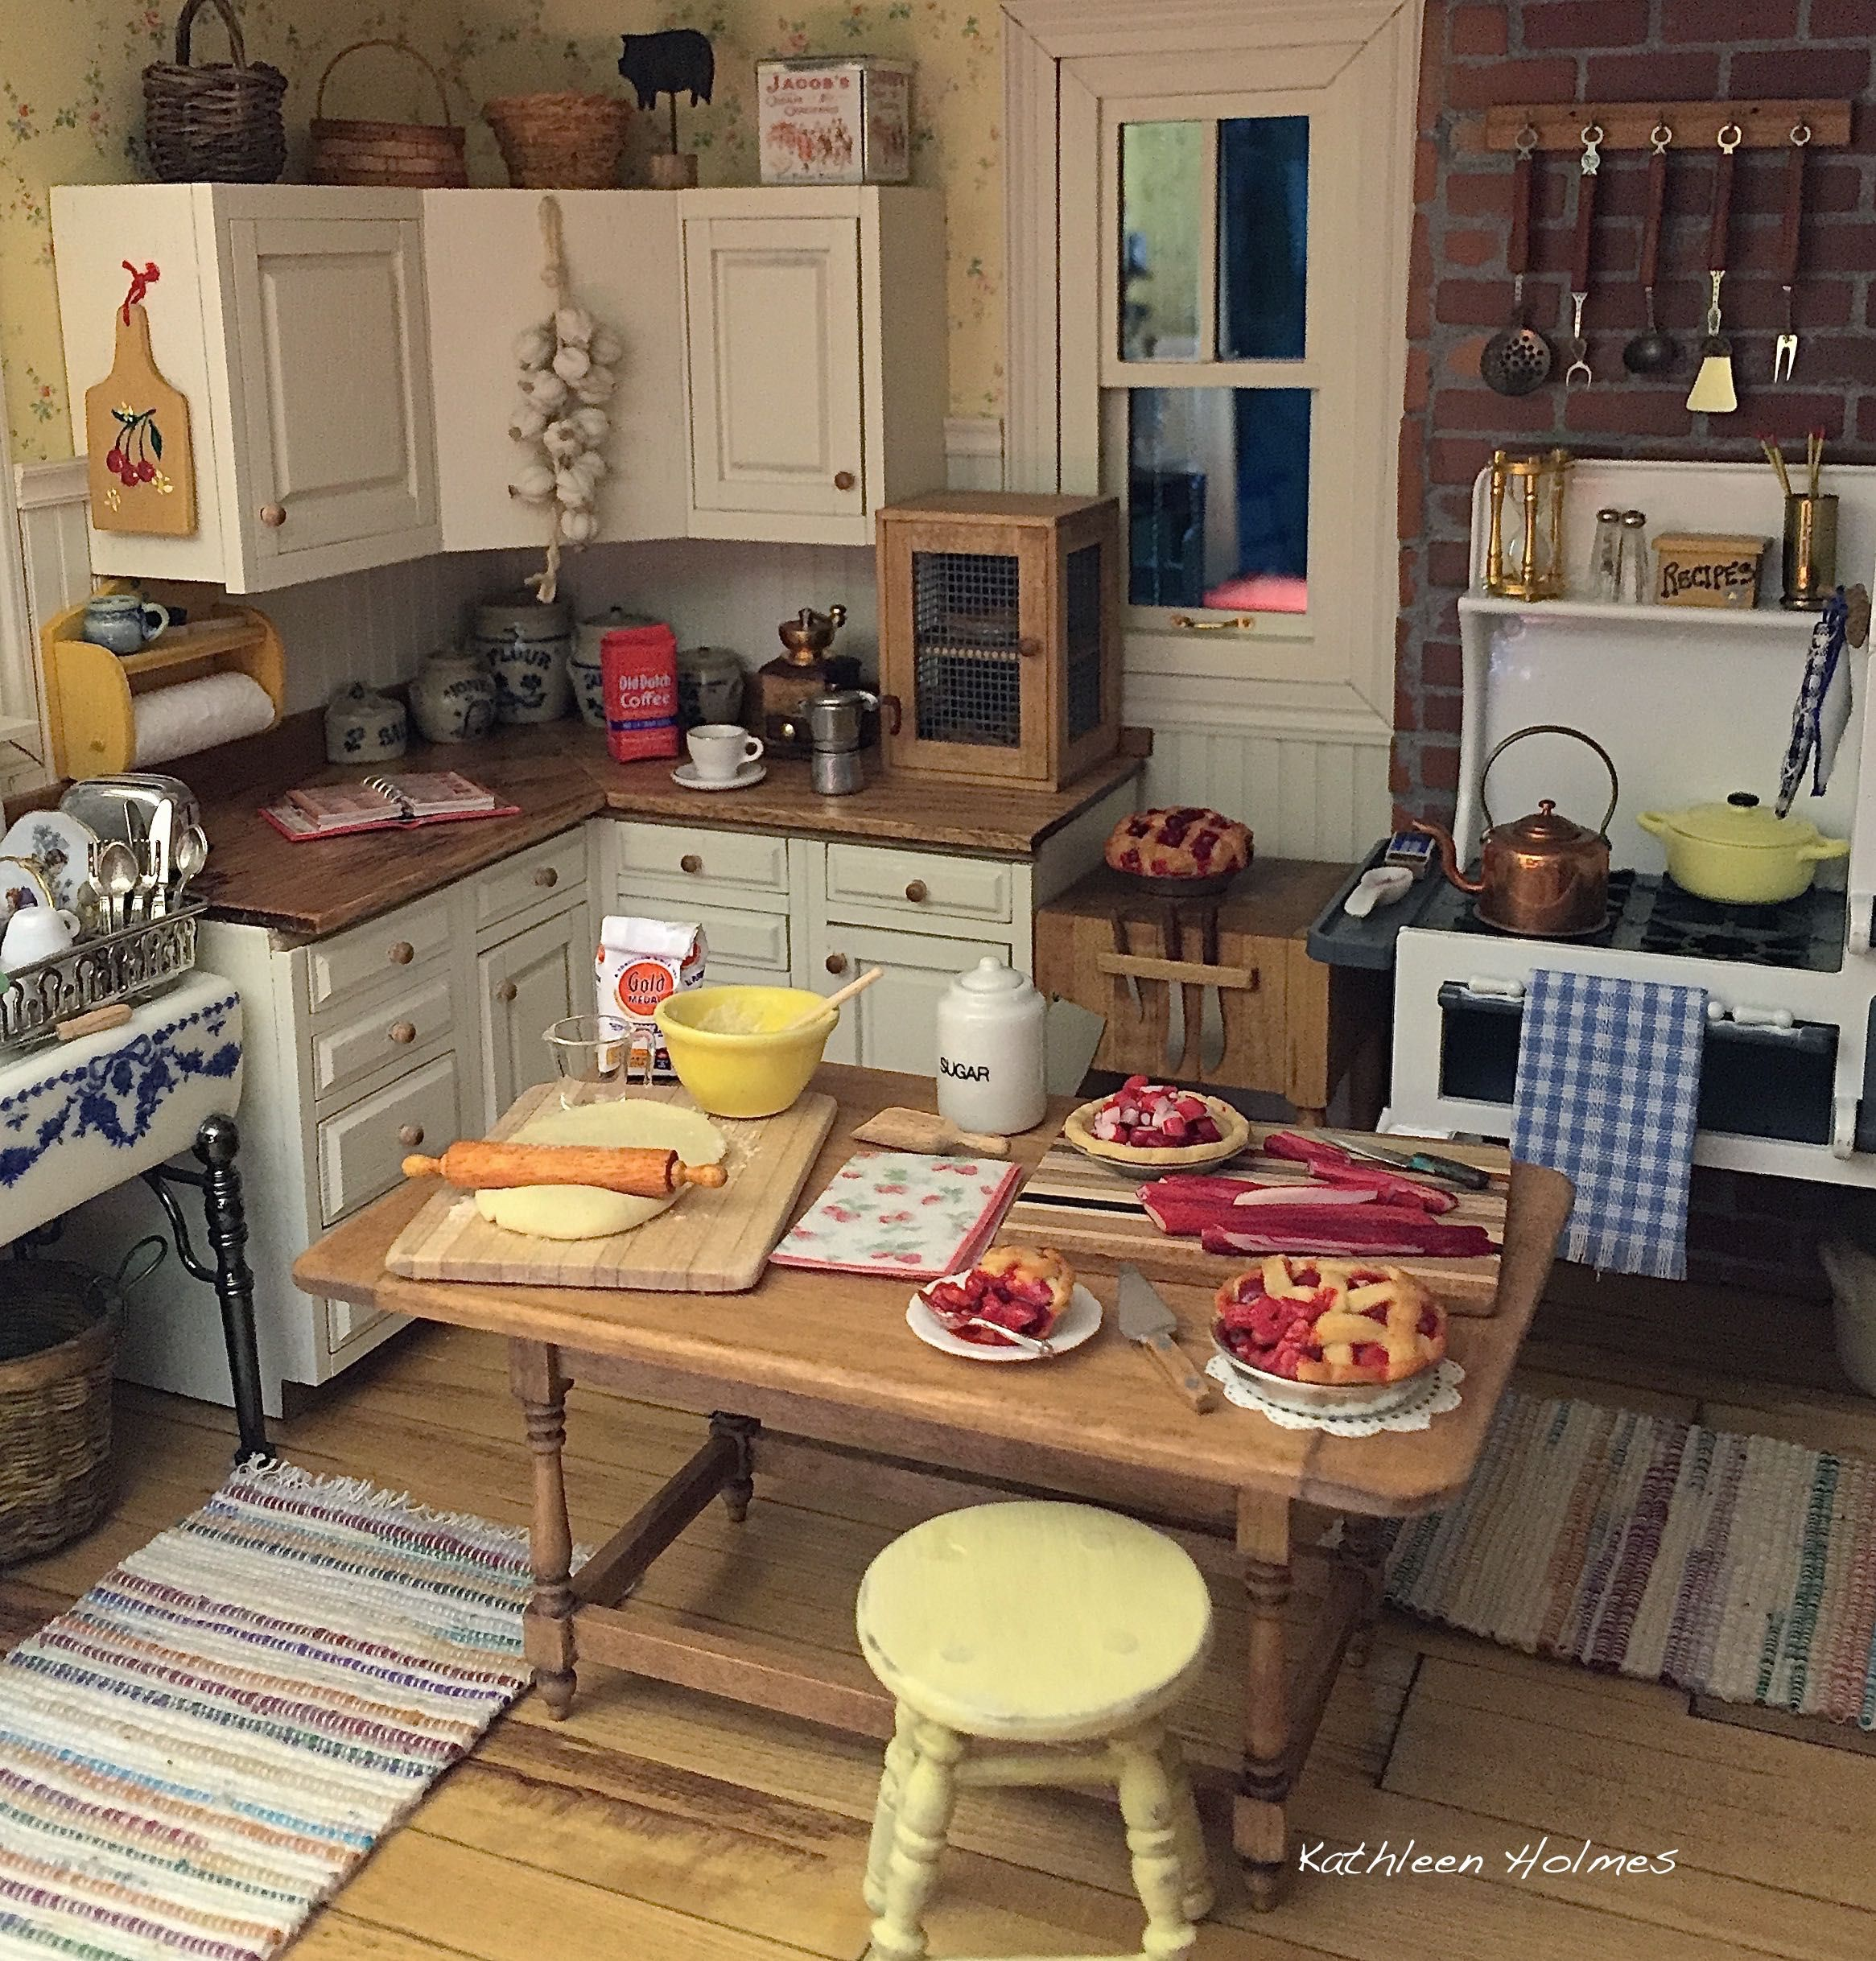 making rhubarb pie in kathleen holmes dollhouse kitchen - Dollhouse Kitchen